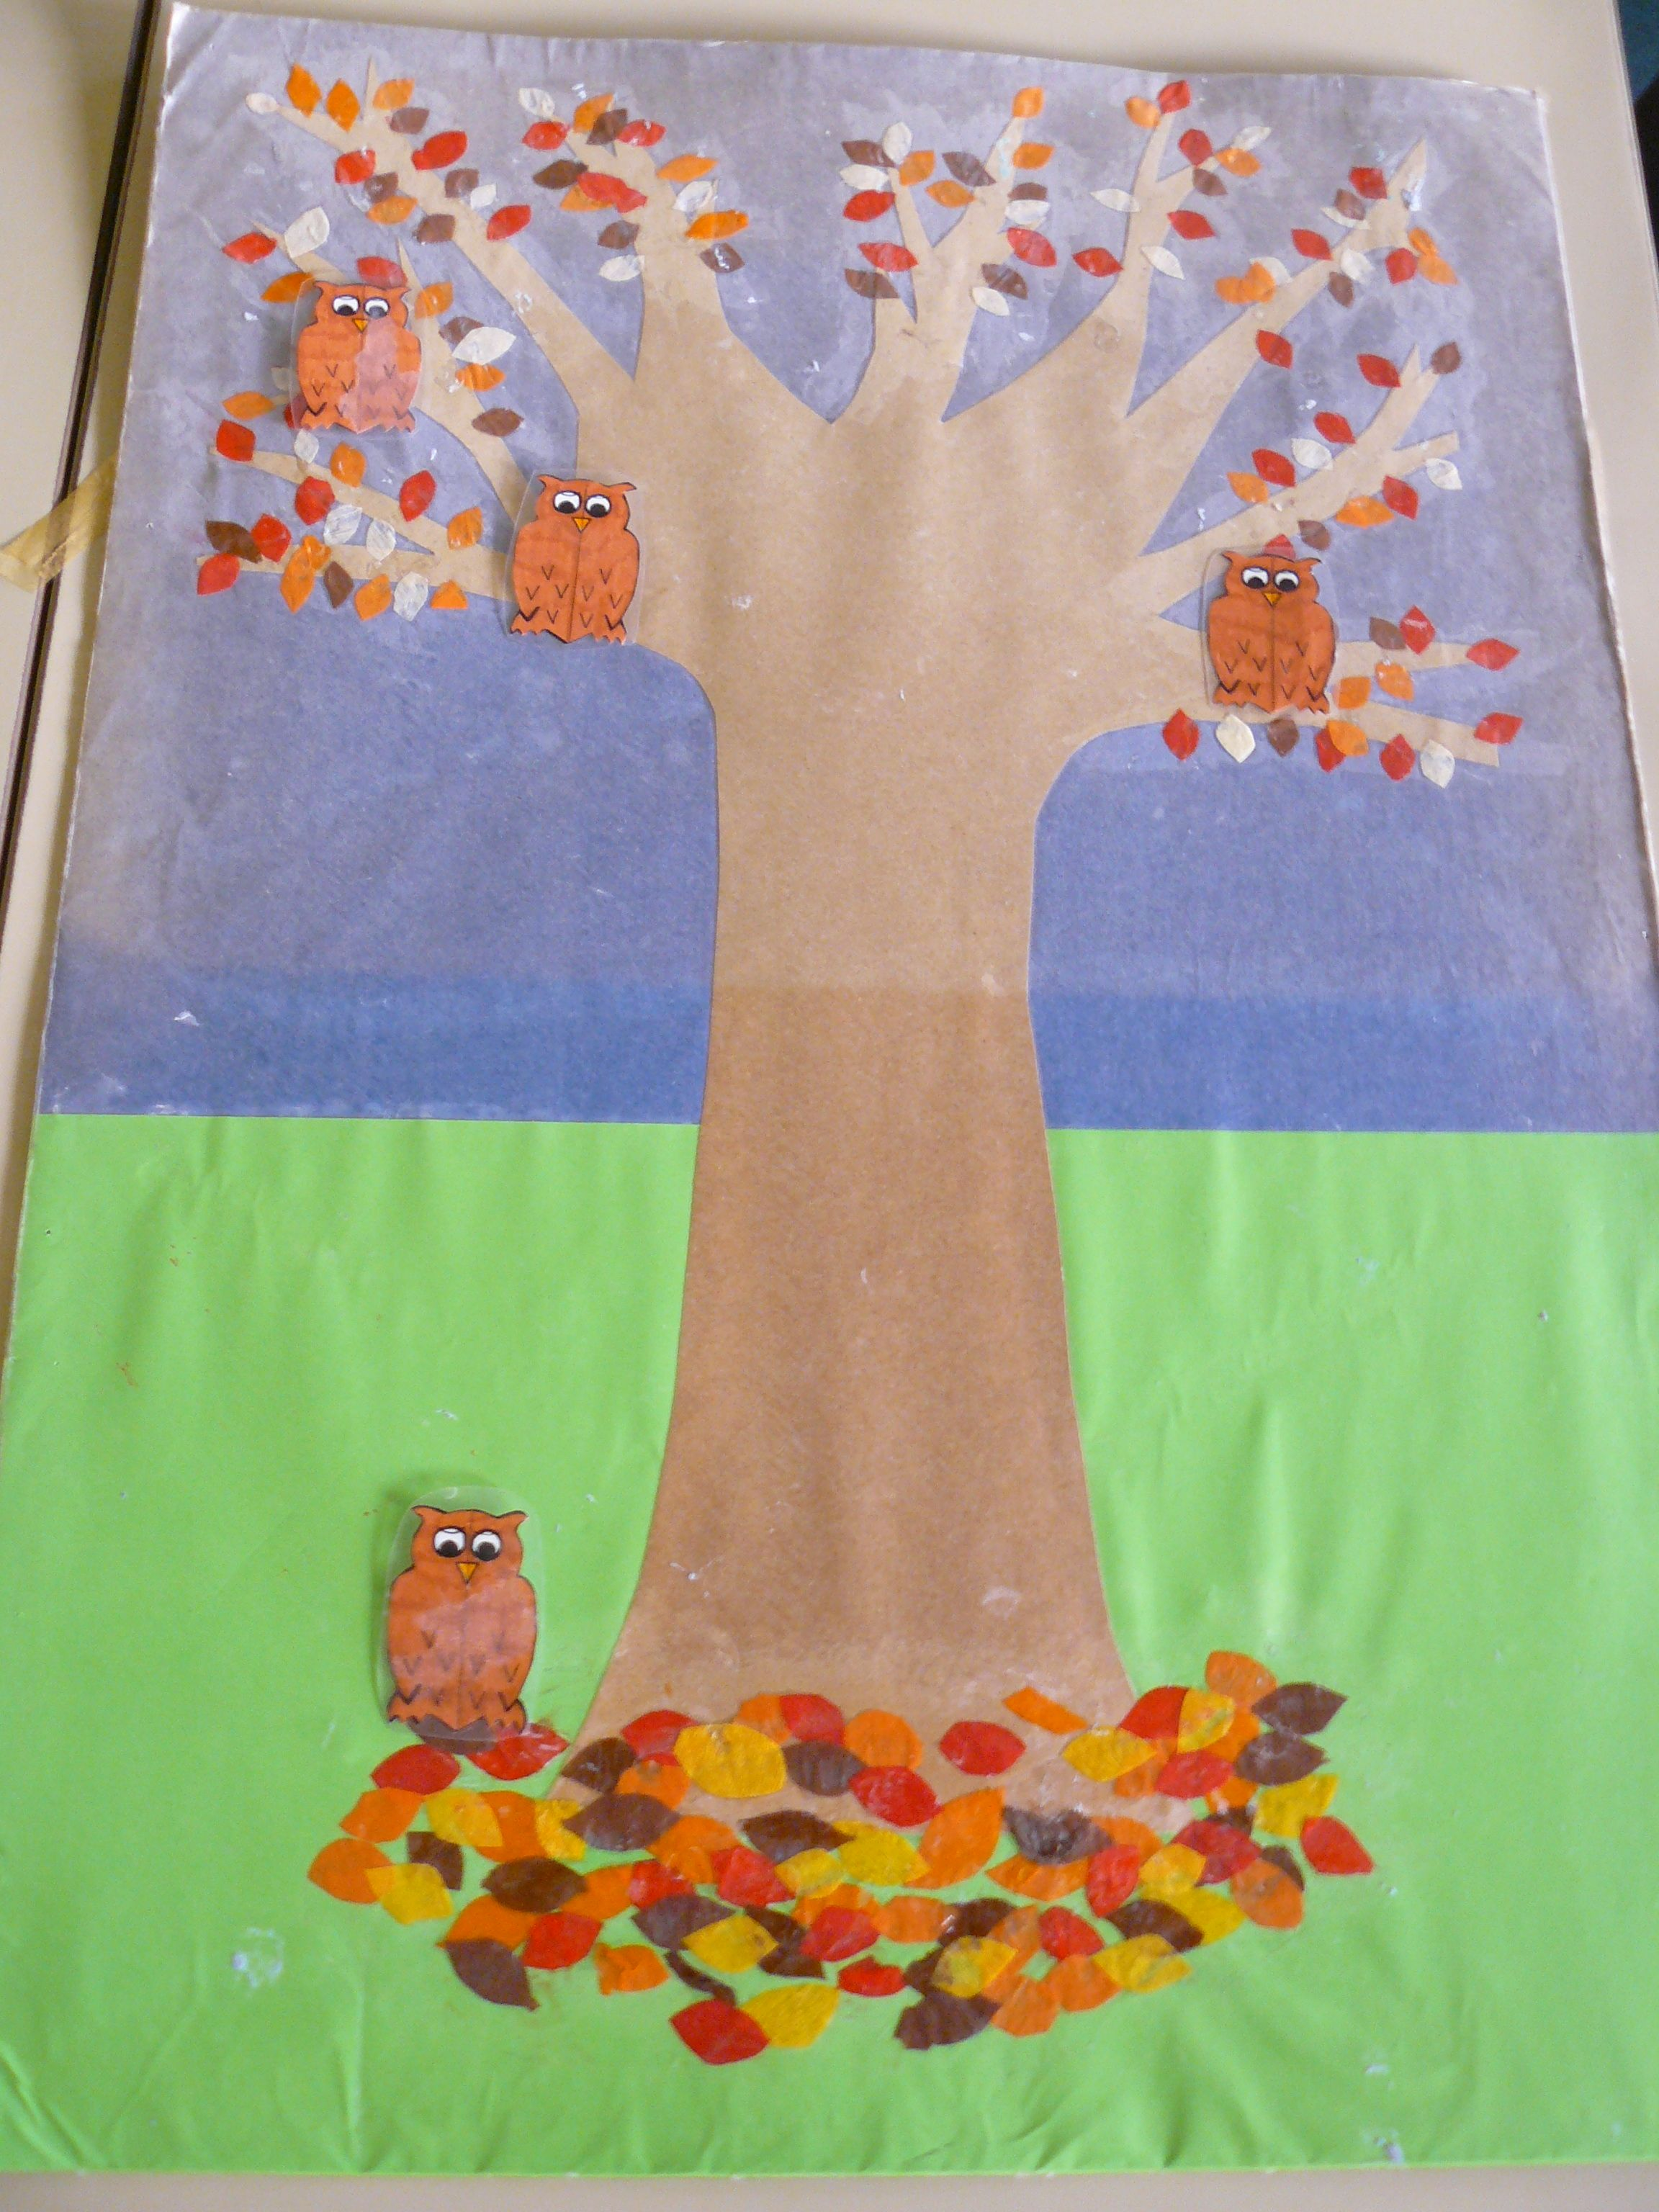 Maths picture owls in Autumn tree. Use to tell addition